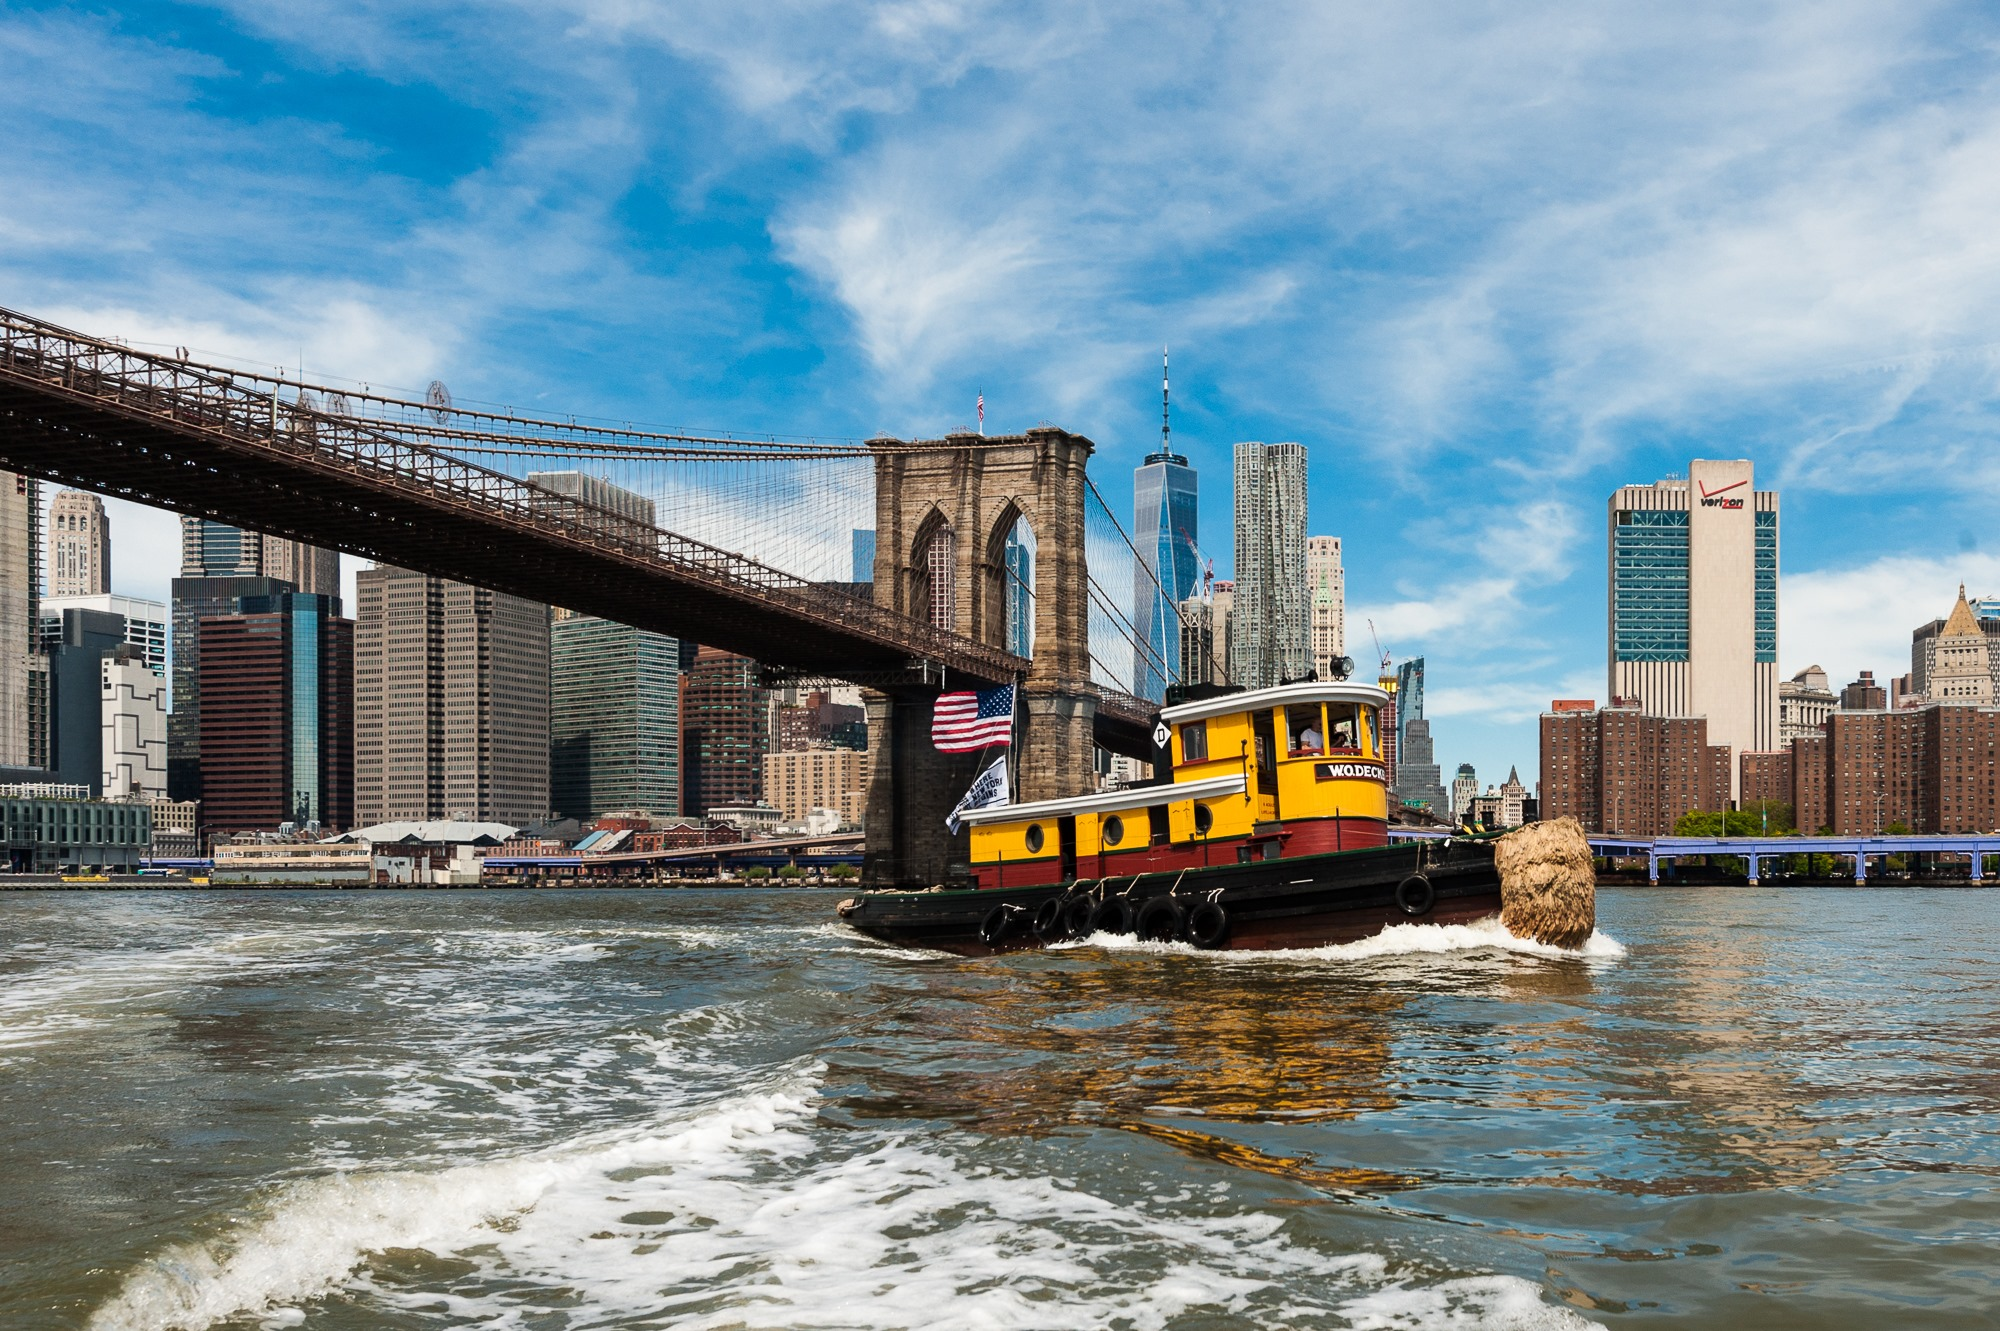 Tugboat Rides on W.O. Decker at South Street Seaport Museum